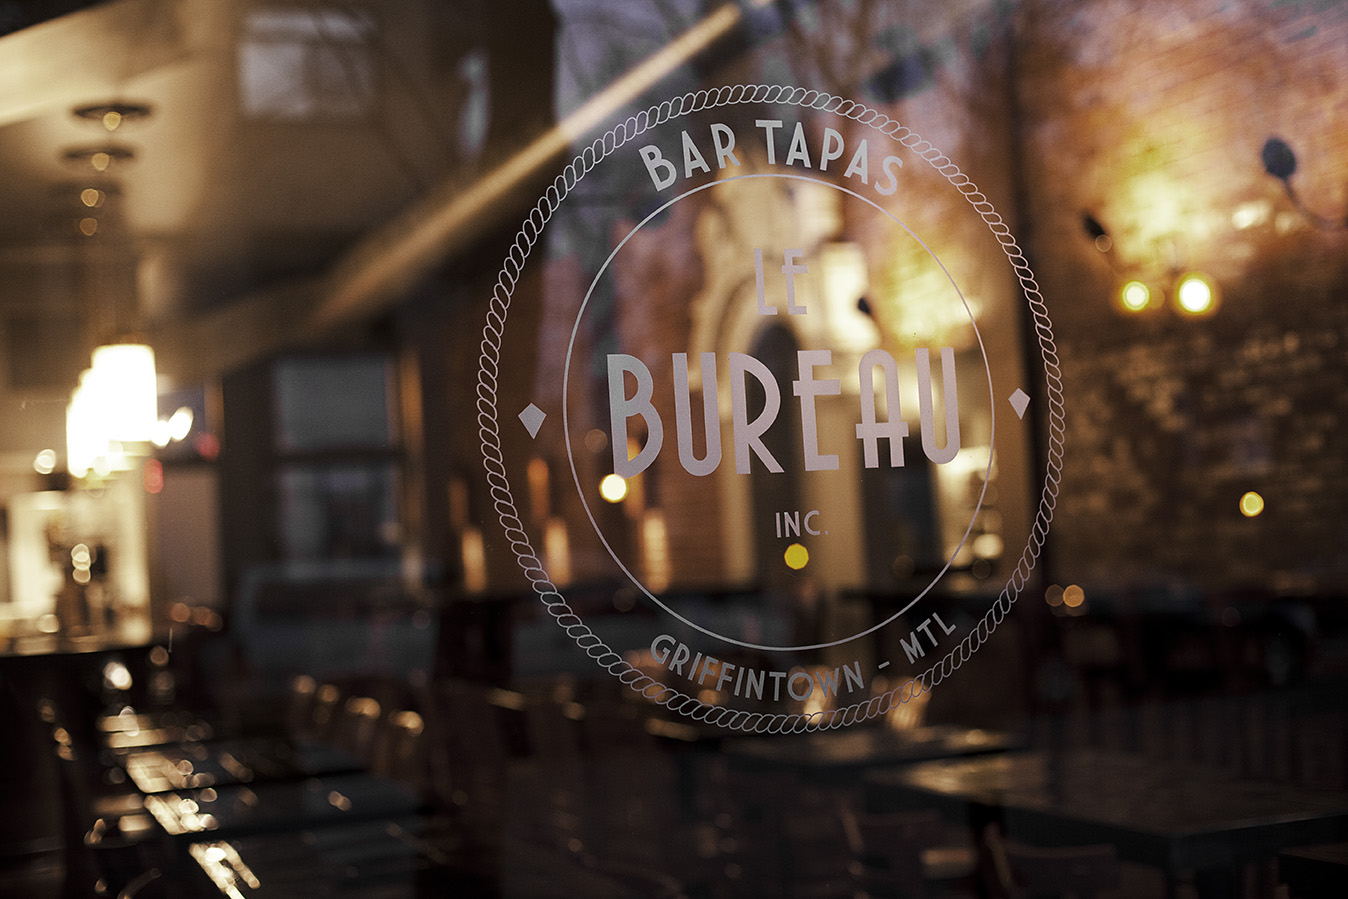 Le bureau bar tapas opens anew in griffintown eater montreal